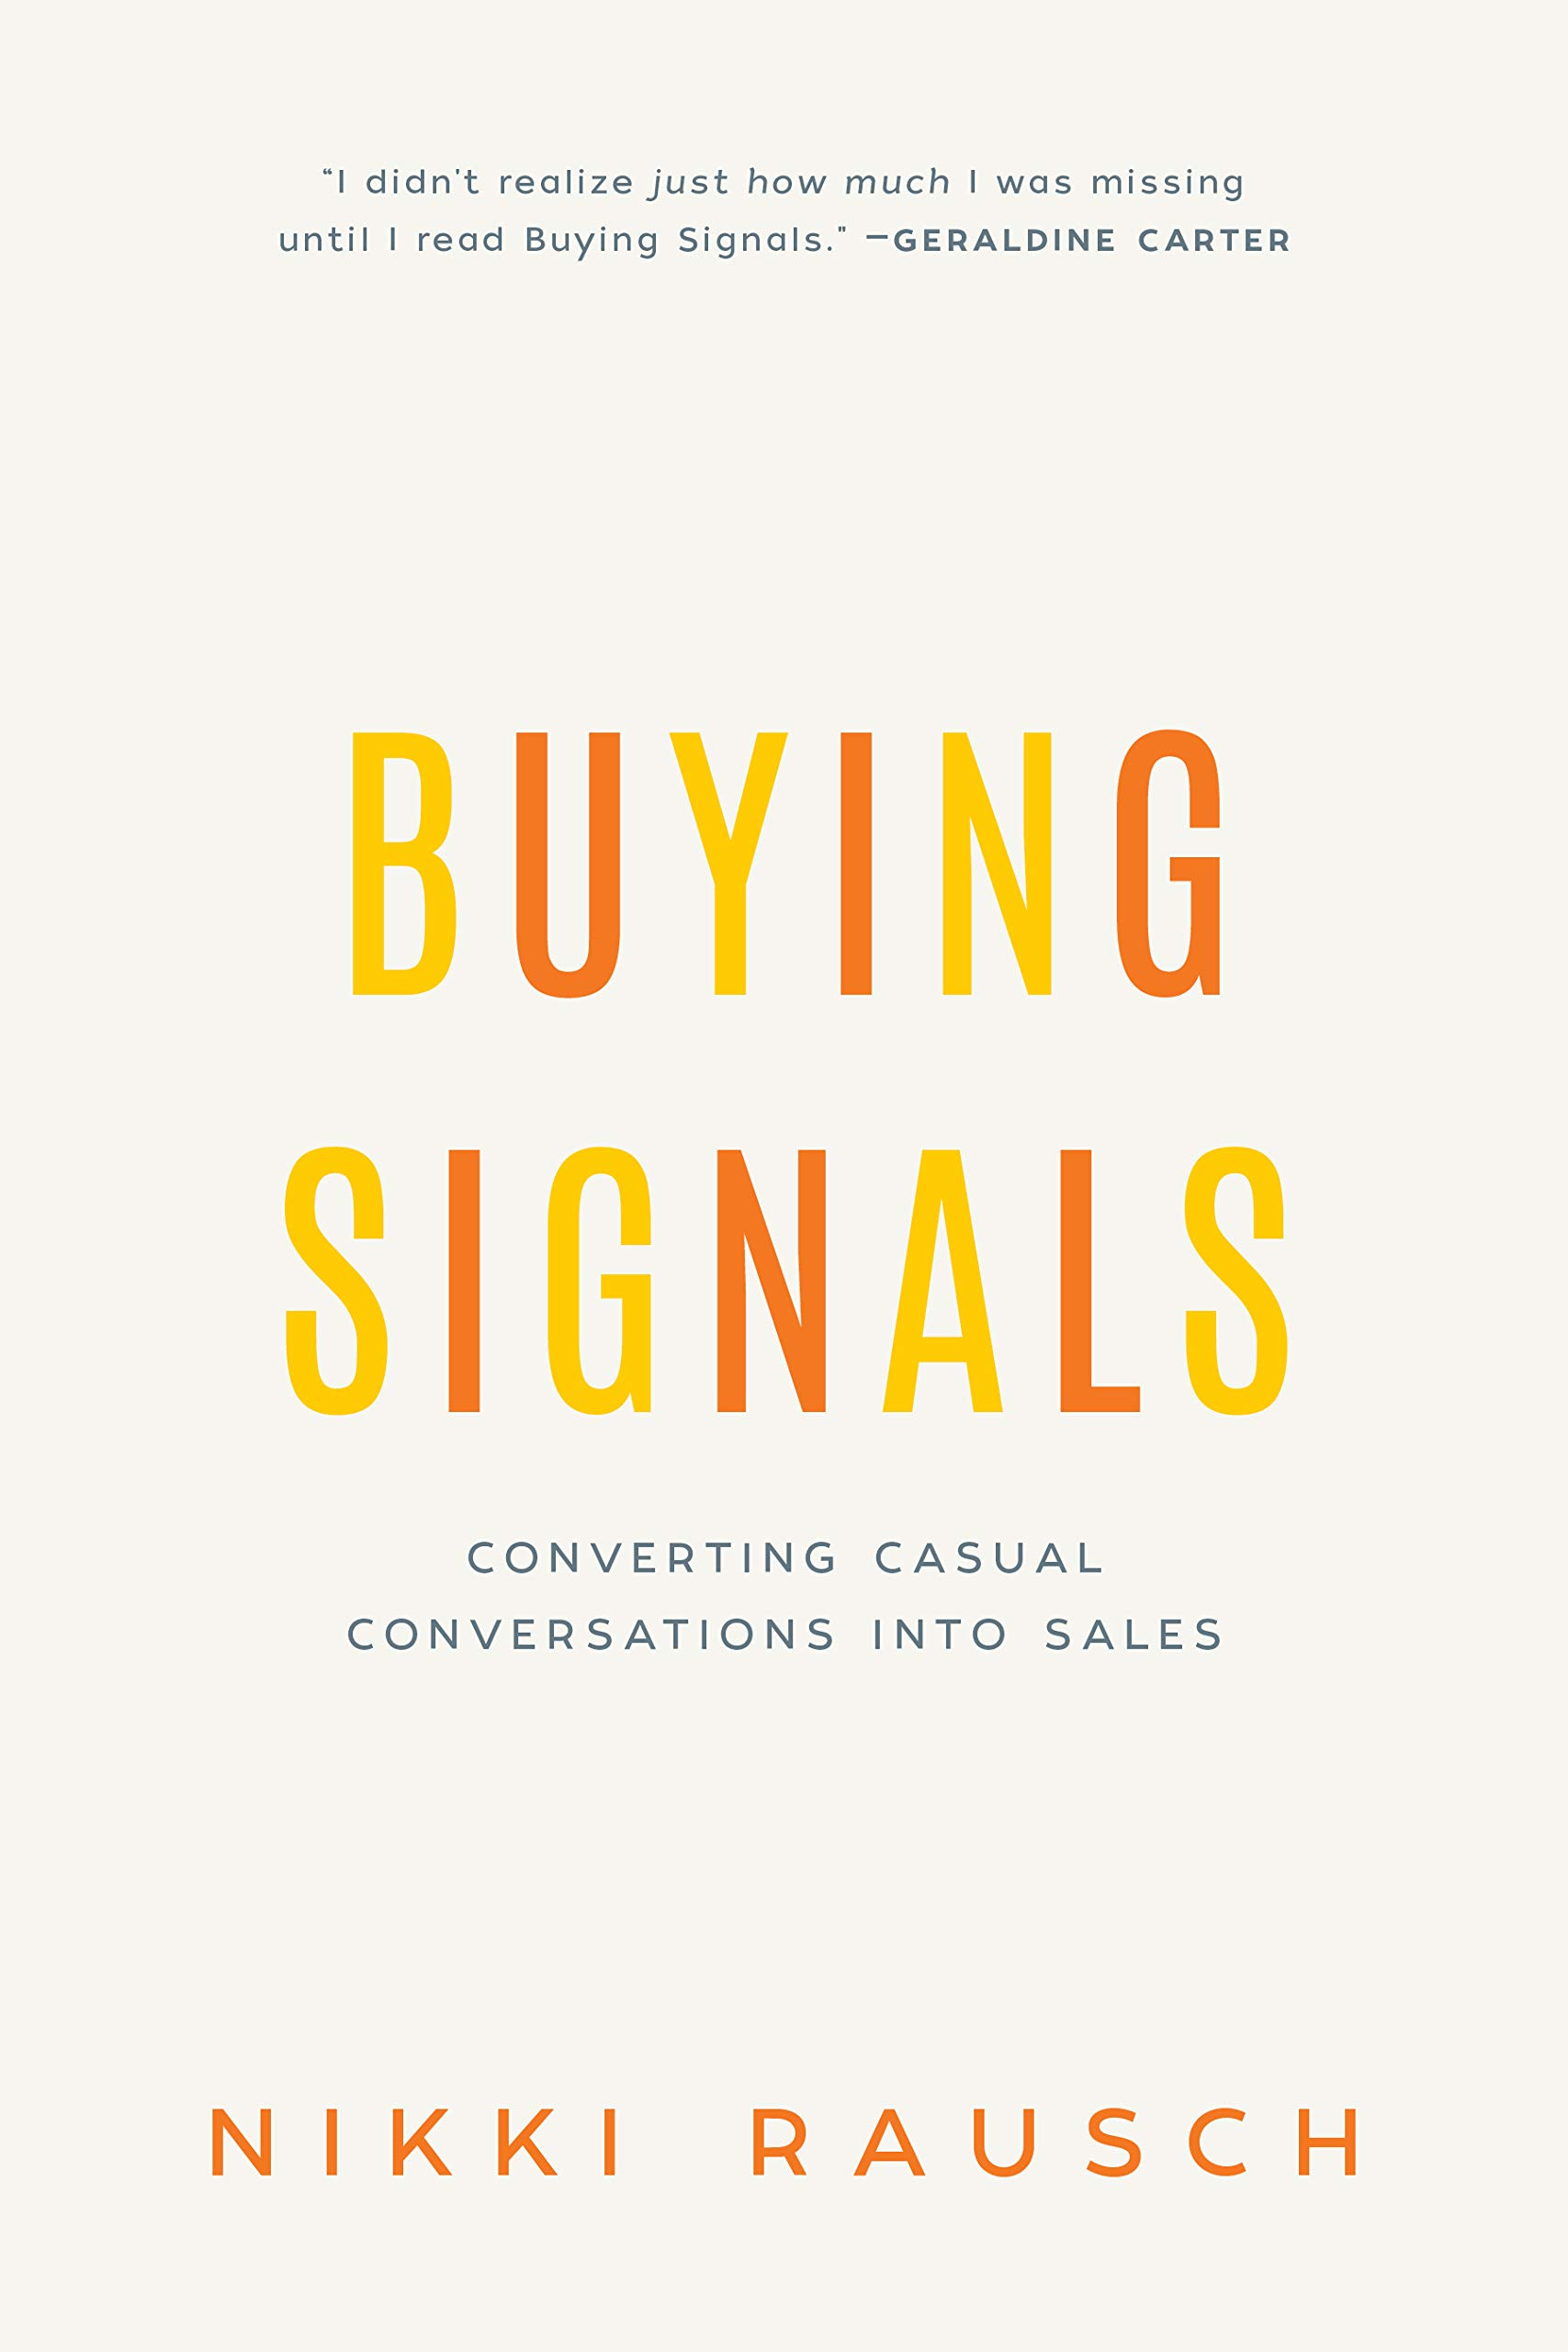 Buying Signals: Turn Casual Conversations into Sales